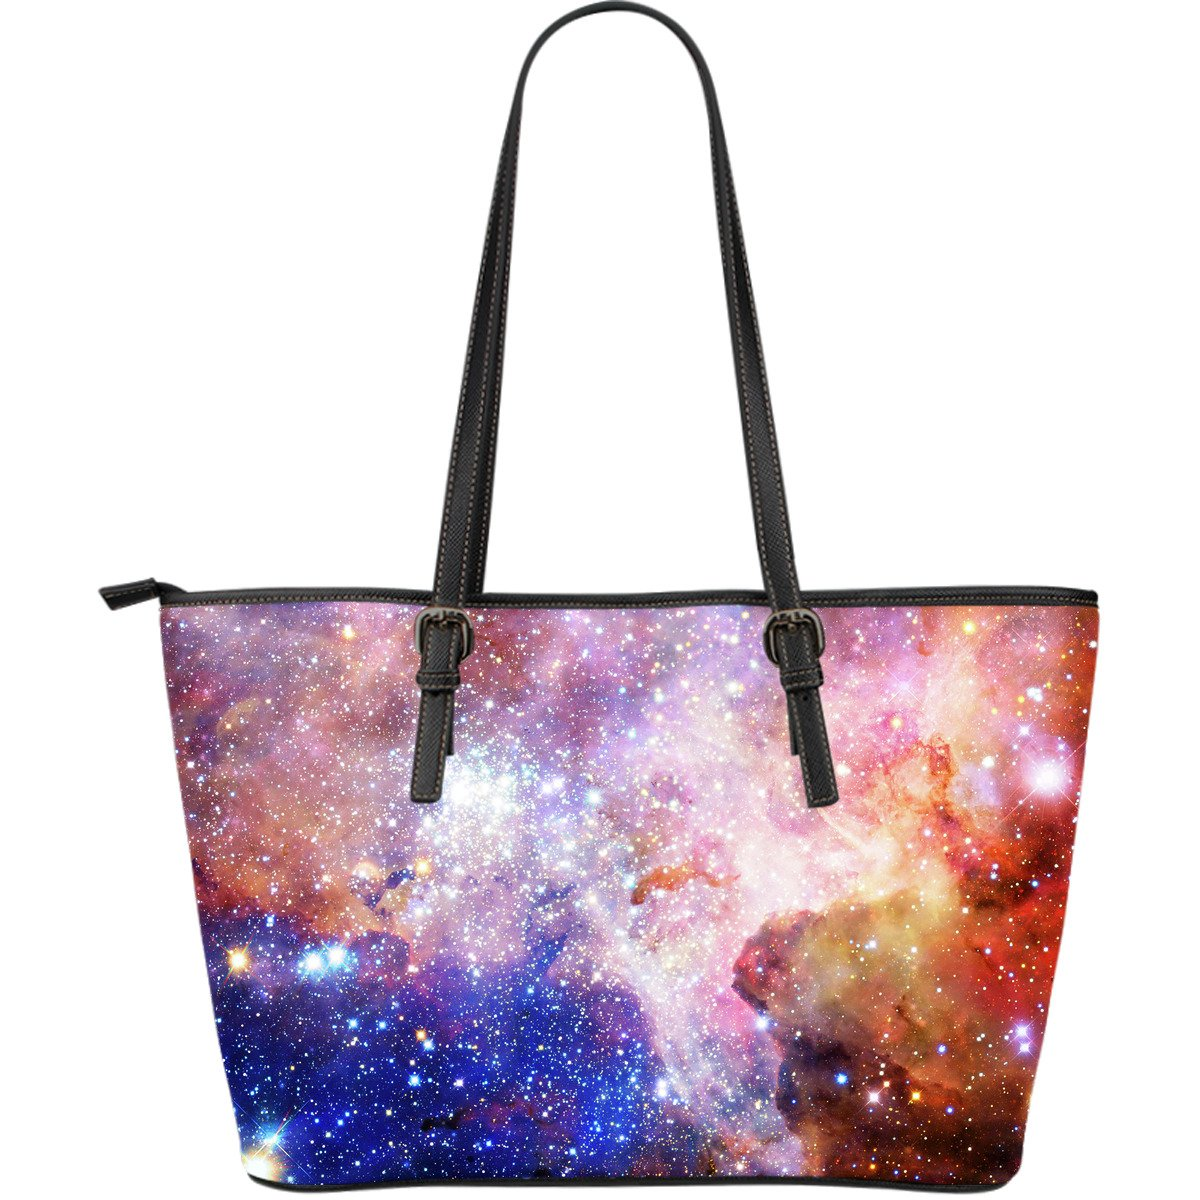 Light Stardust Galaxy Deep Space Print Leather Tote Bag GearFrost